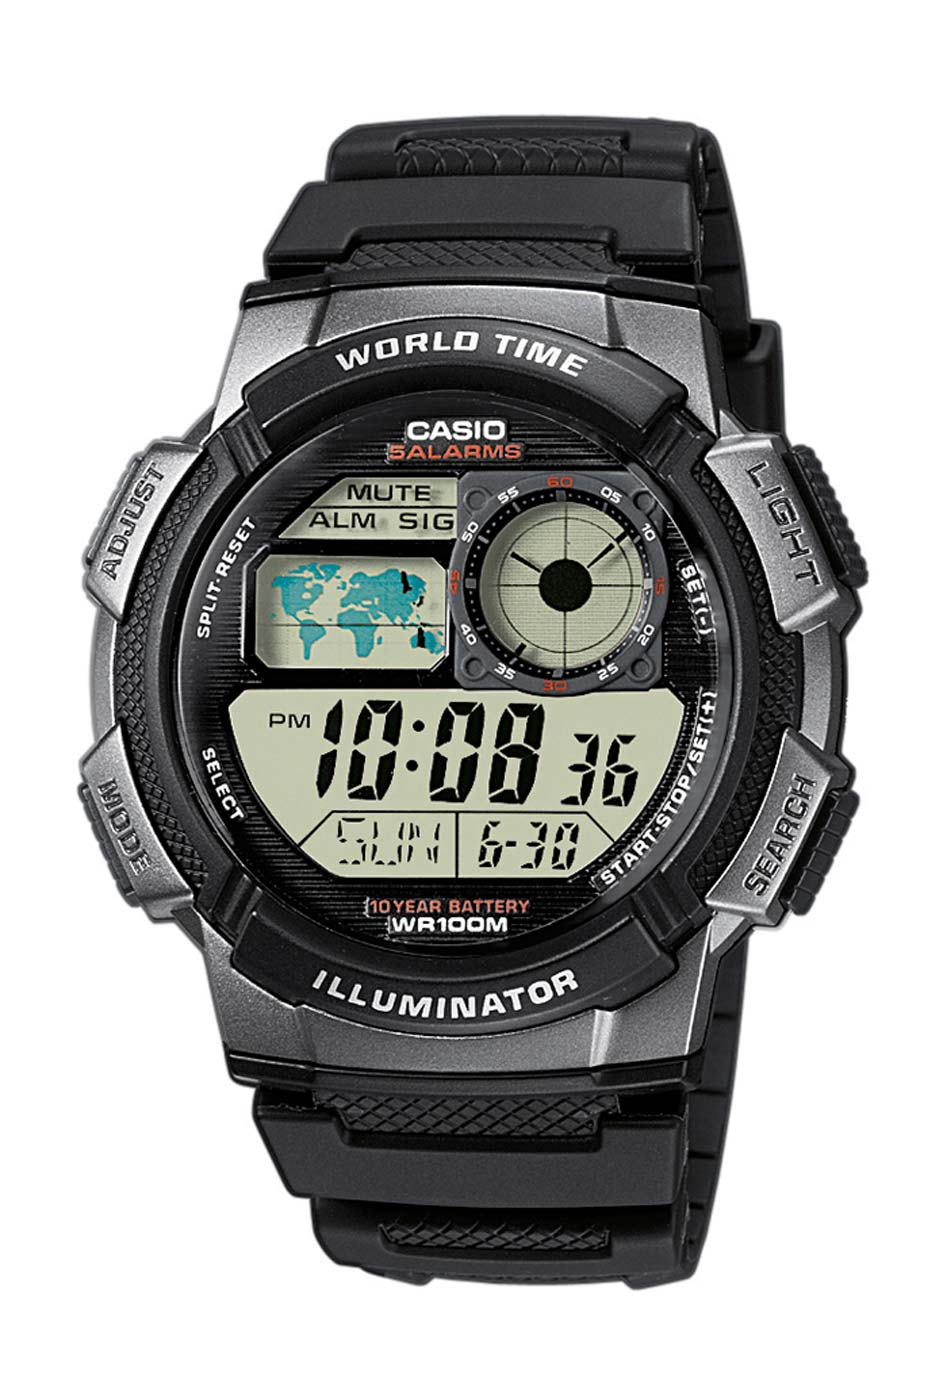 casio ae 1000w 1bvef montre montre homme montre sport nouveau ebay. Black Bedroom Furniture Sets. Home Design Ideas